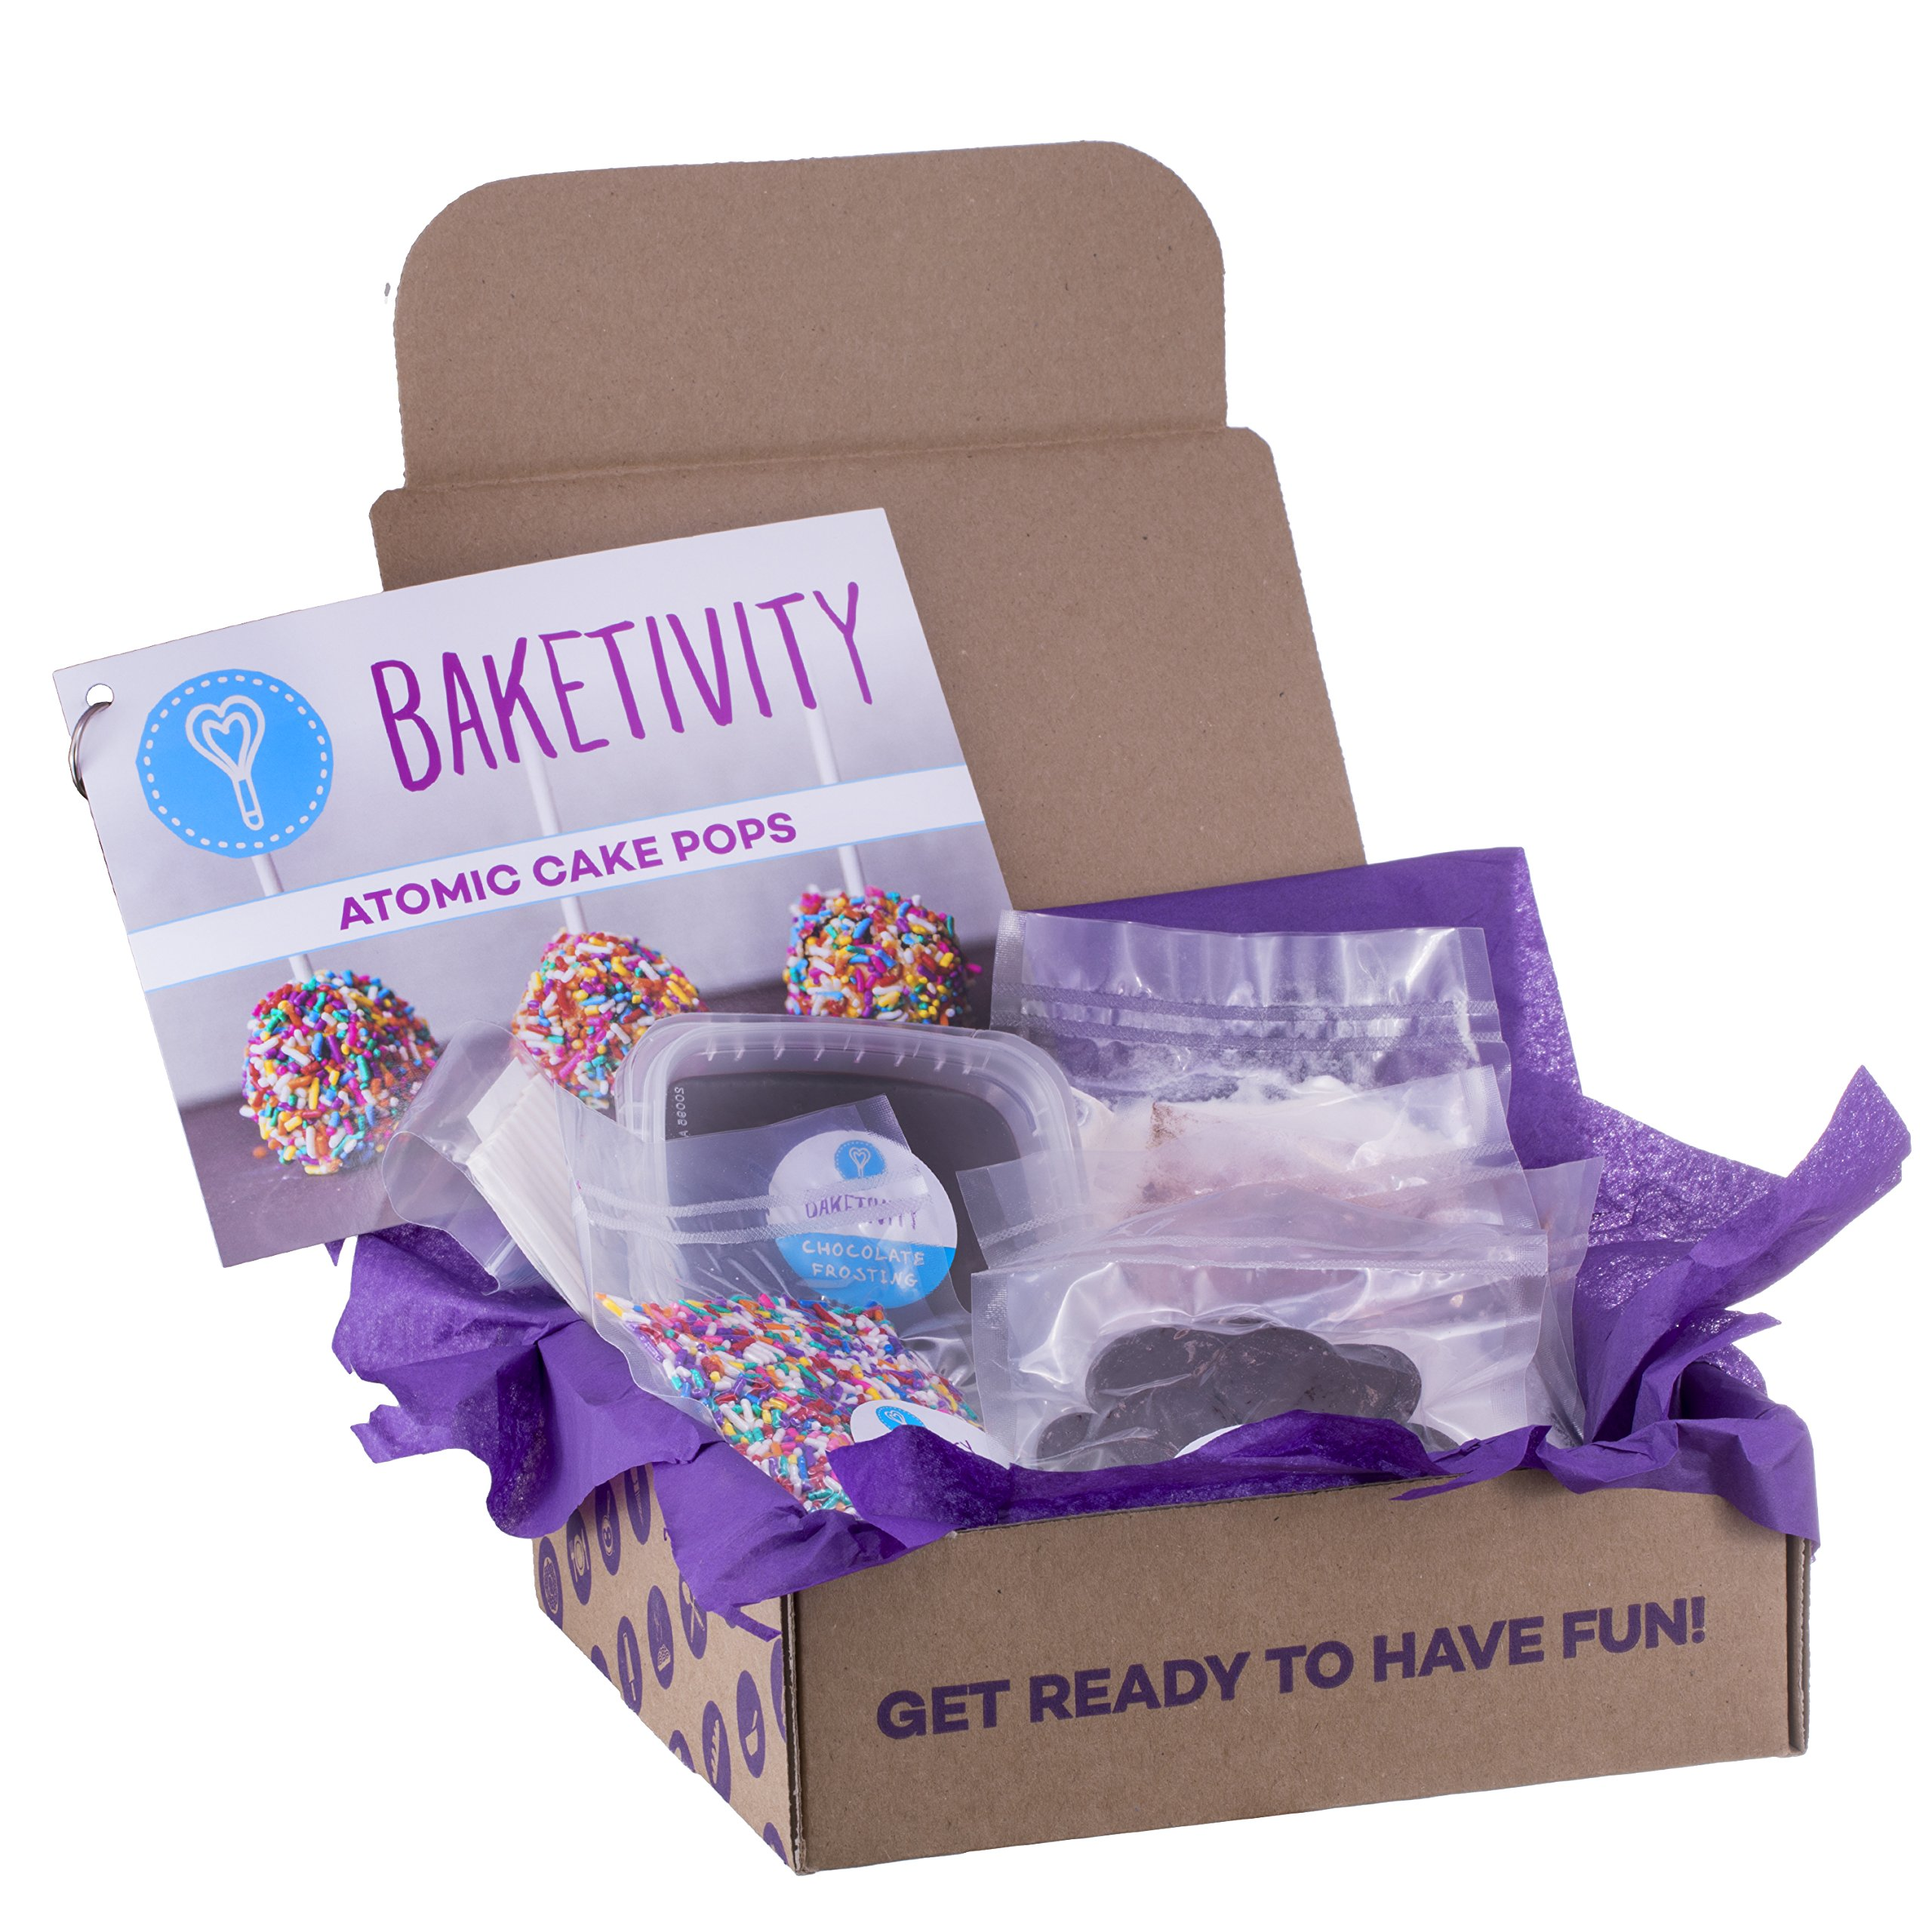 Baketivity Kids Baking Set, Meal Cooking Party Supply Kit for Teens, Real Fun Little Junior Chef Essential Kitchen Lessons, Includes Pre-Measured Ingredients, Delicious Cake Pops by Baketivity